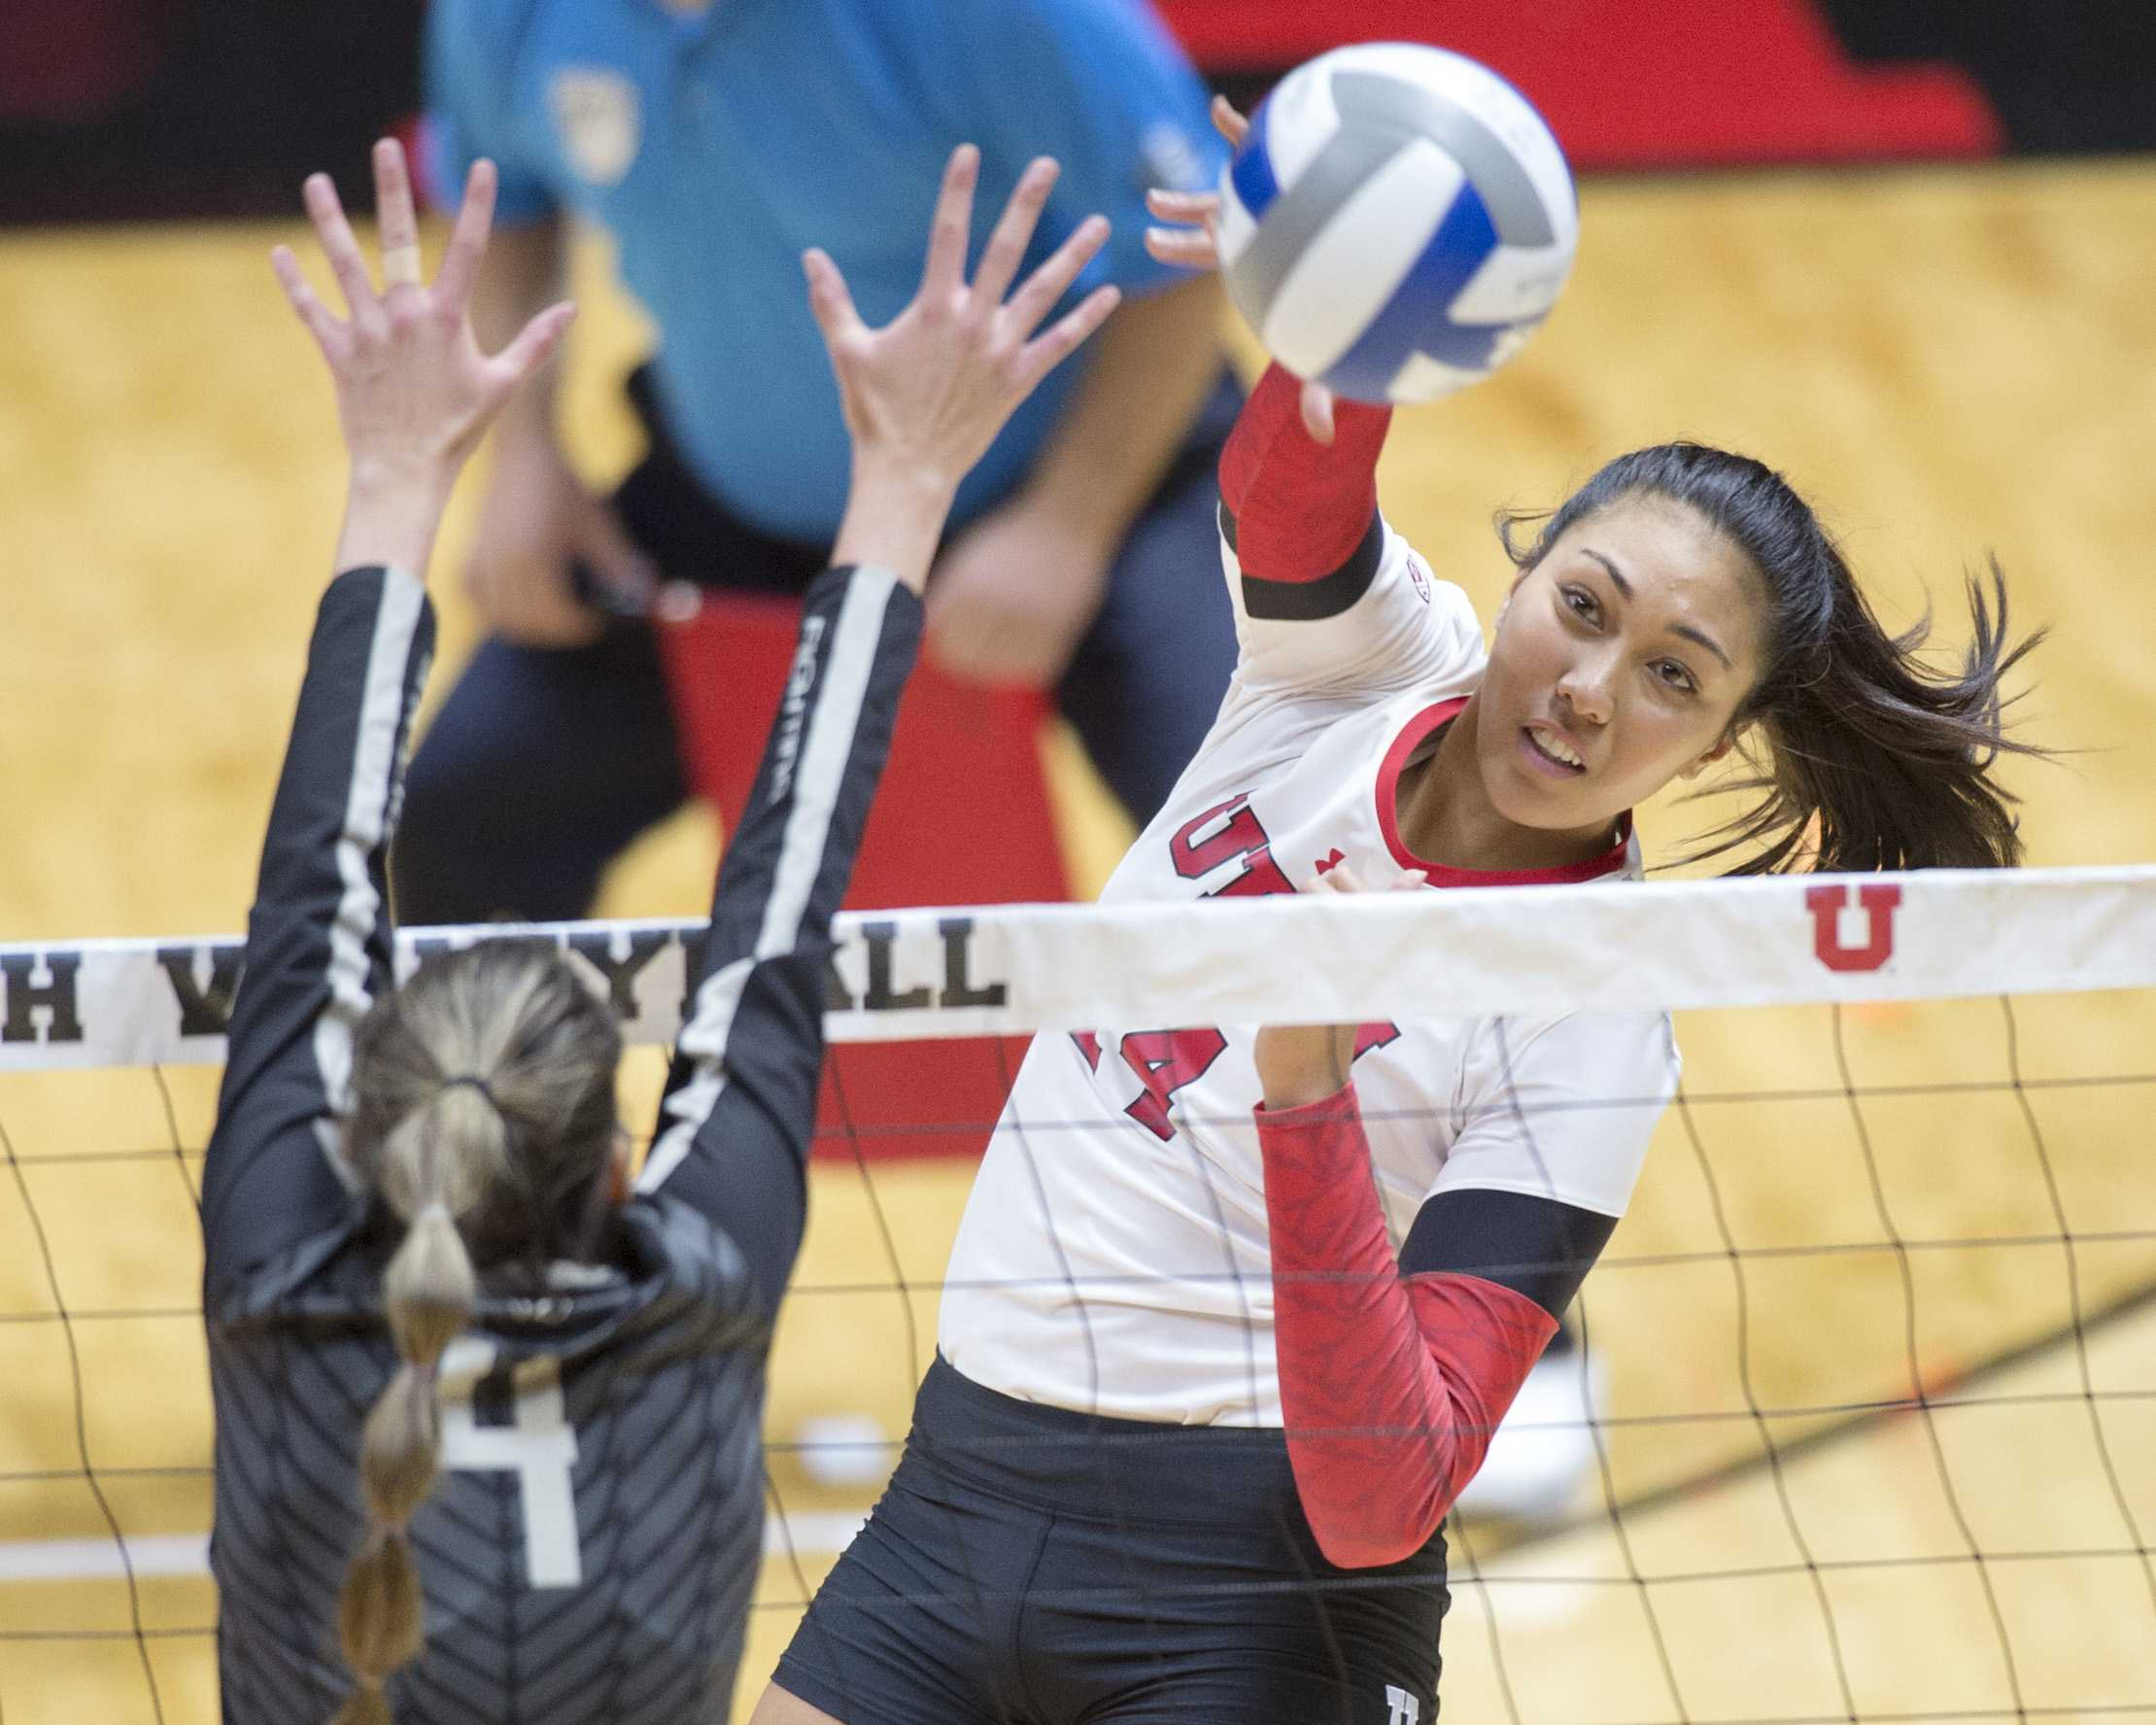 University of Utah Volleyball senior outside hitter Adora Anae (14) spikes the ball in a set of matches vs. The Oregon Ducks at the Huntsman Center in Salt Lake City, UT on Friday, Sept. 29, 2017  (Photo by Kiffer Creveling | The Daily Utah Chronicle)